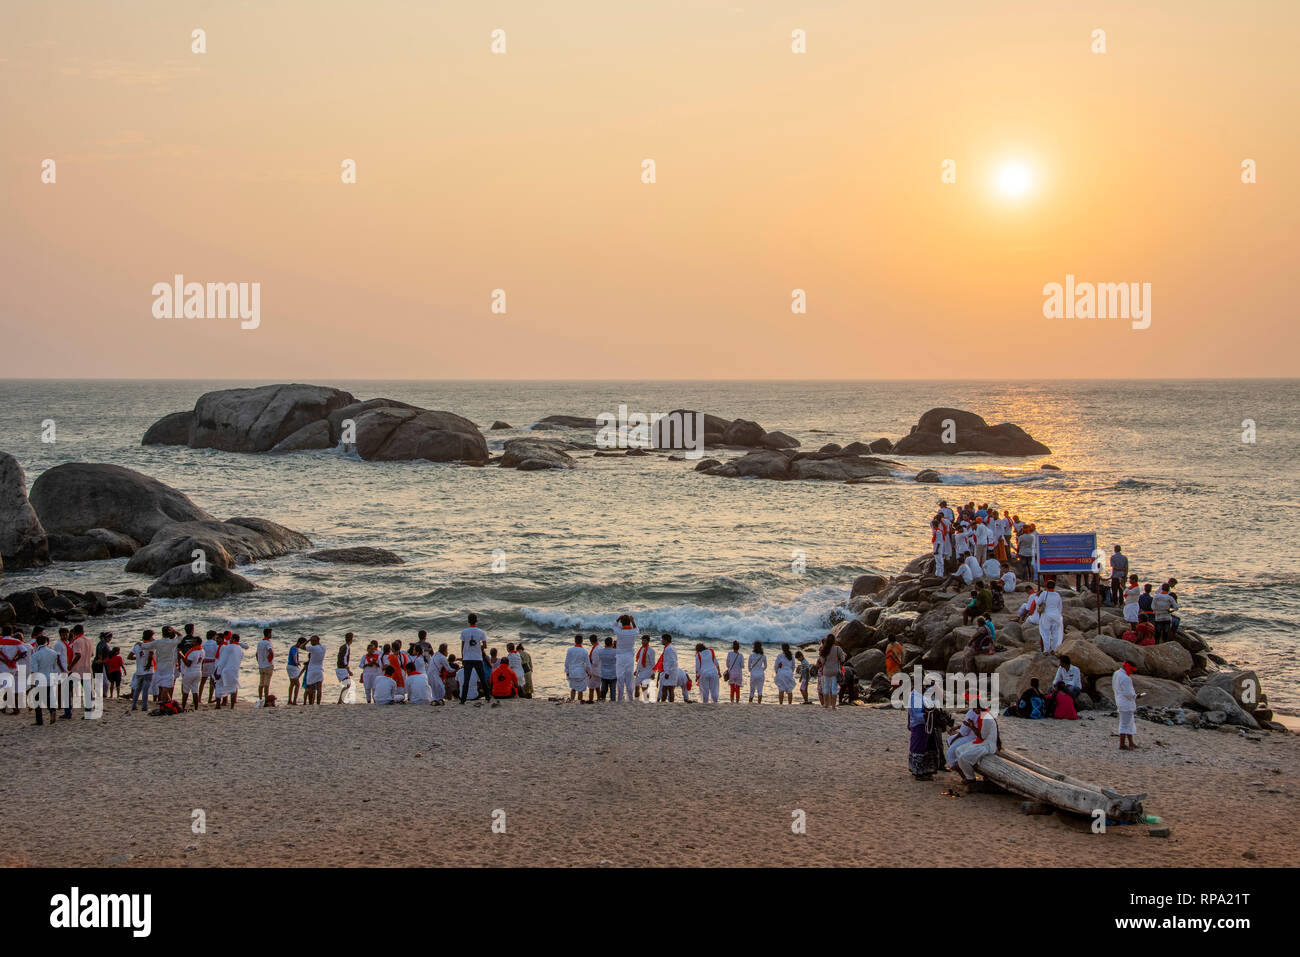 HDR image of crowds of local Indian people like to go to the beach at sunset to watch the sun go down on the beach at Sunset View Point in Kanyakumari. - Stock Image